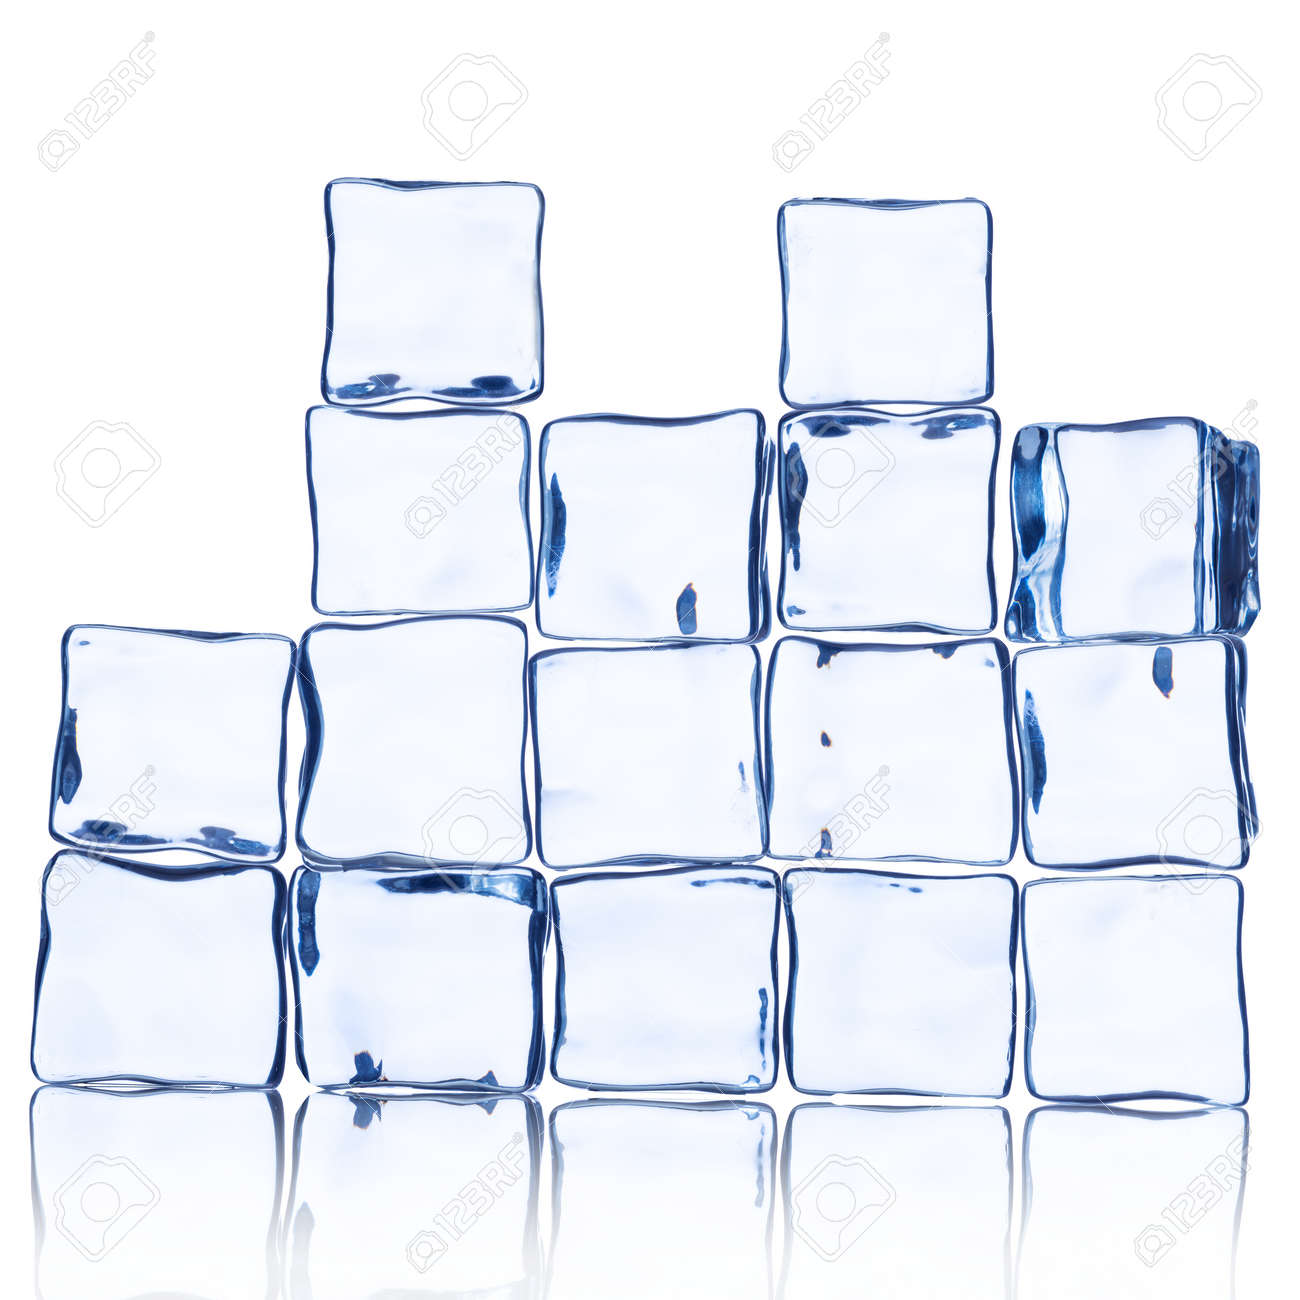 Wall Of Ice Cube On White Stock Photo Picture And Royalty Free